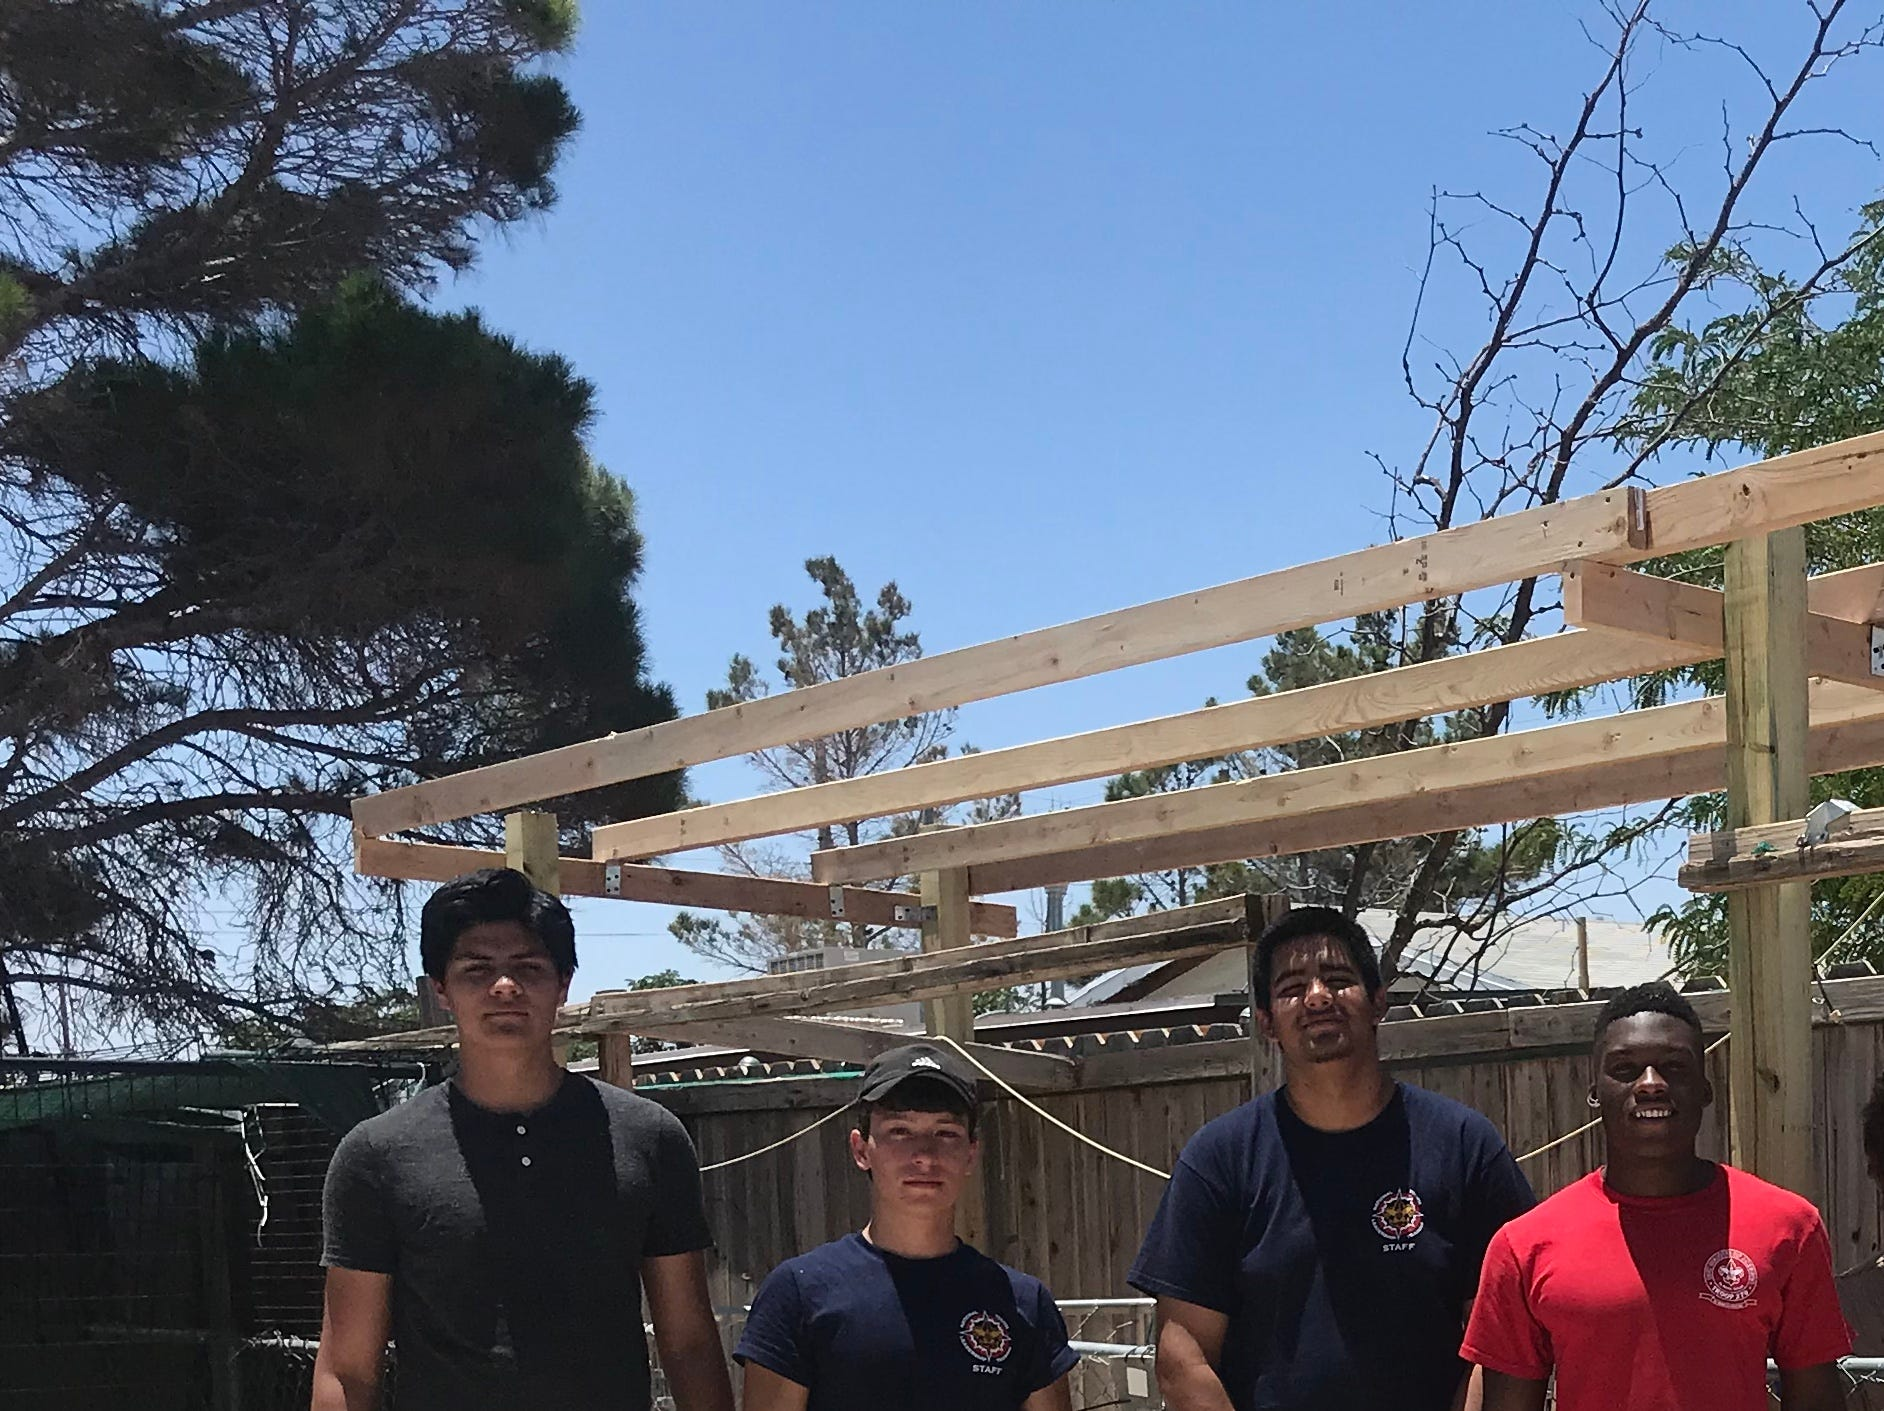 James Cordero, second from left, with friends from his troop and school who helped with the Eagle project.